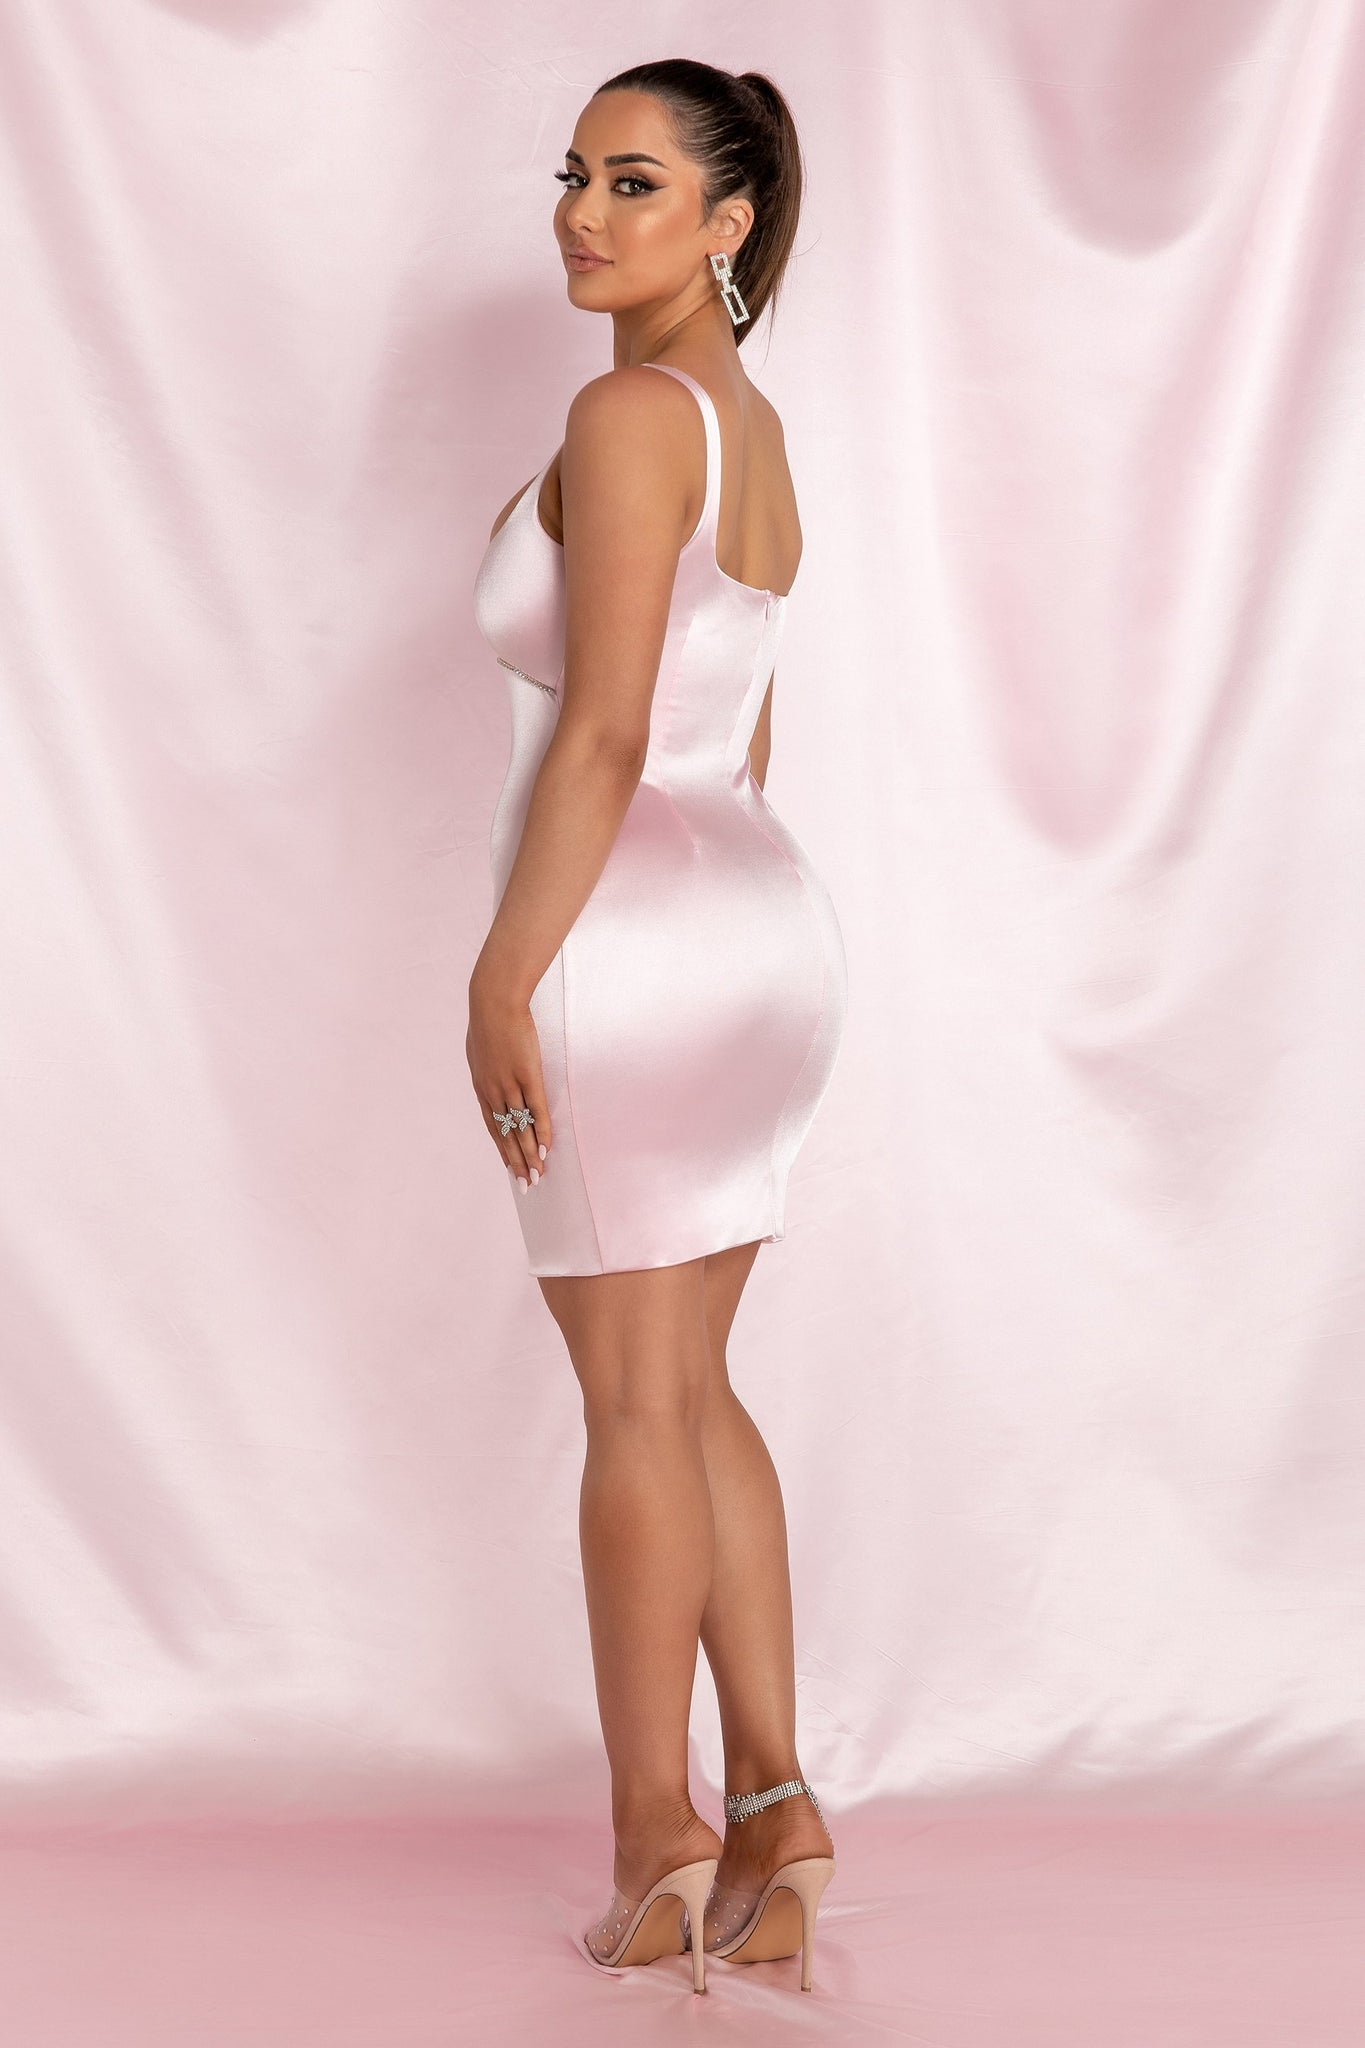 Mallory Diamante Underbust Trim Mini Dress - Baby Pink - MESHKI